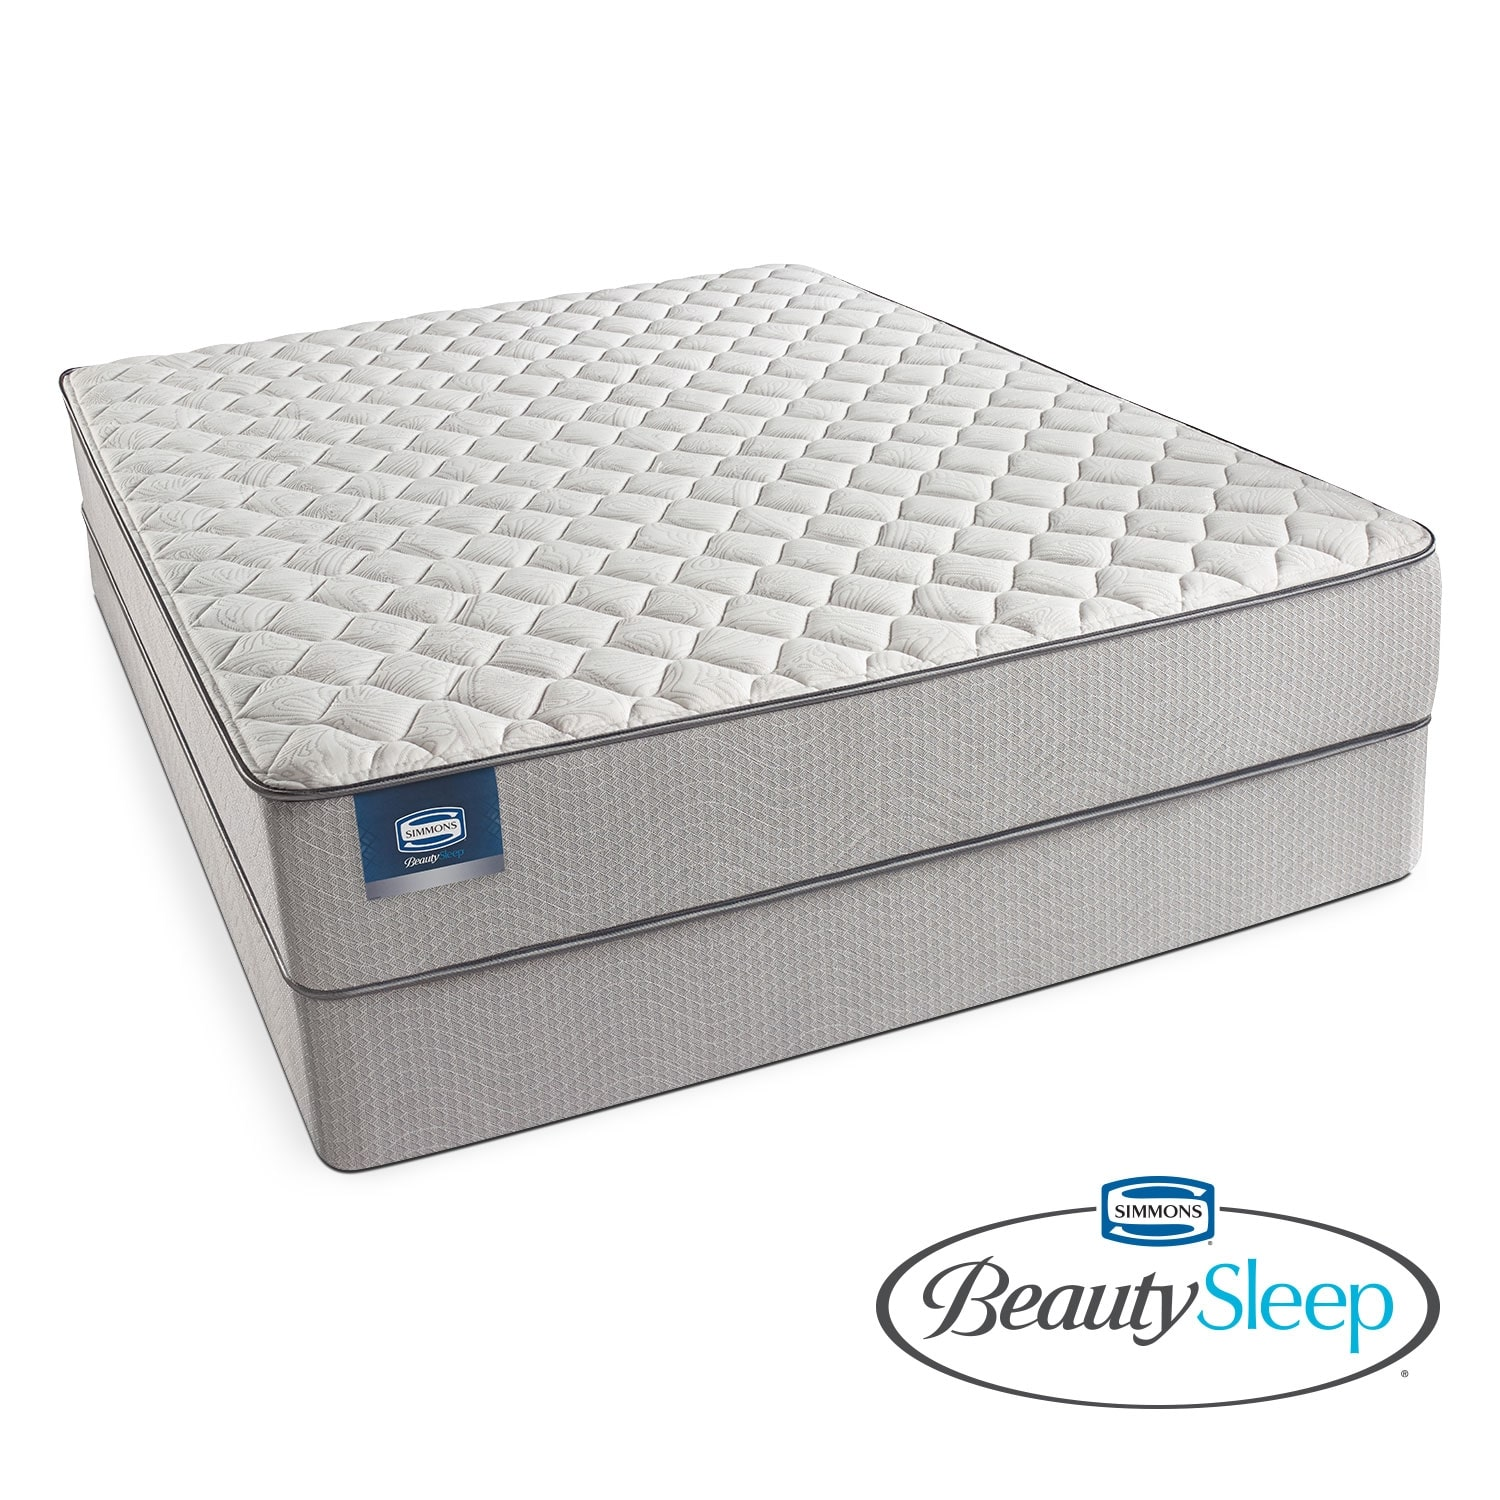 Mattresses and Bedding - Canal St. Firm King Mattress/Split Low-Profile Foundation Set